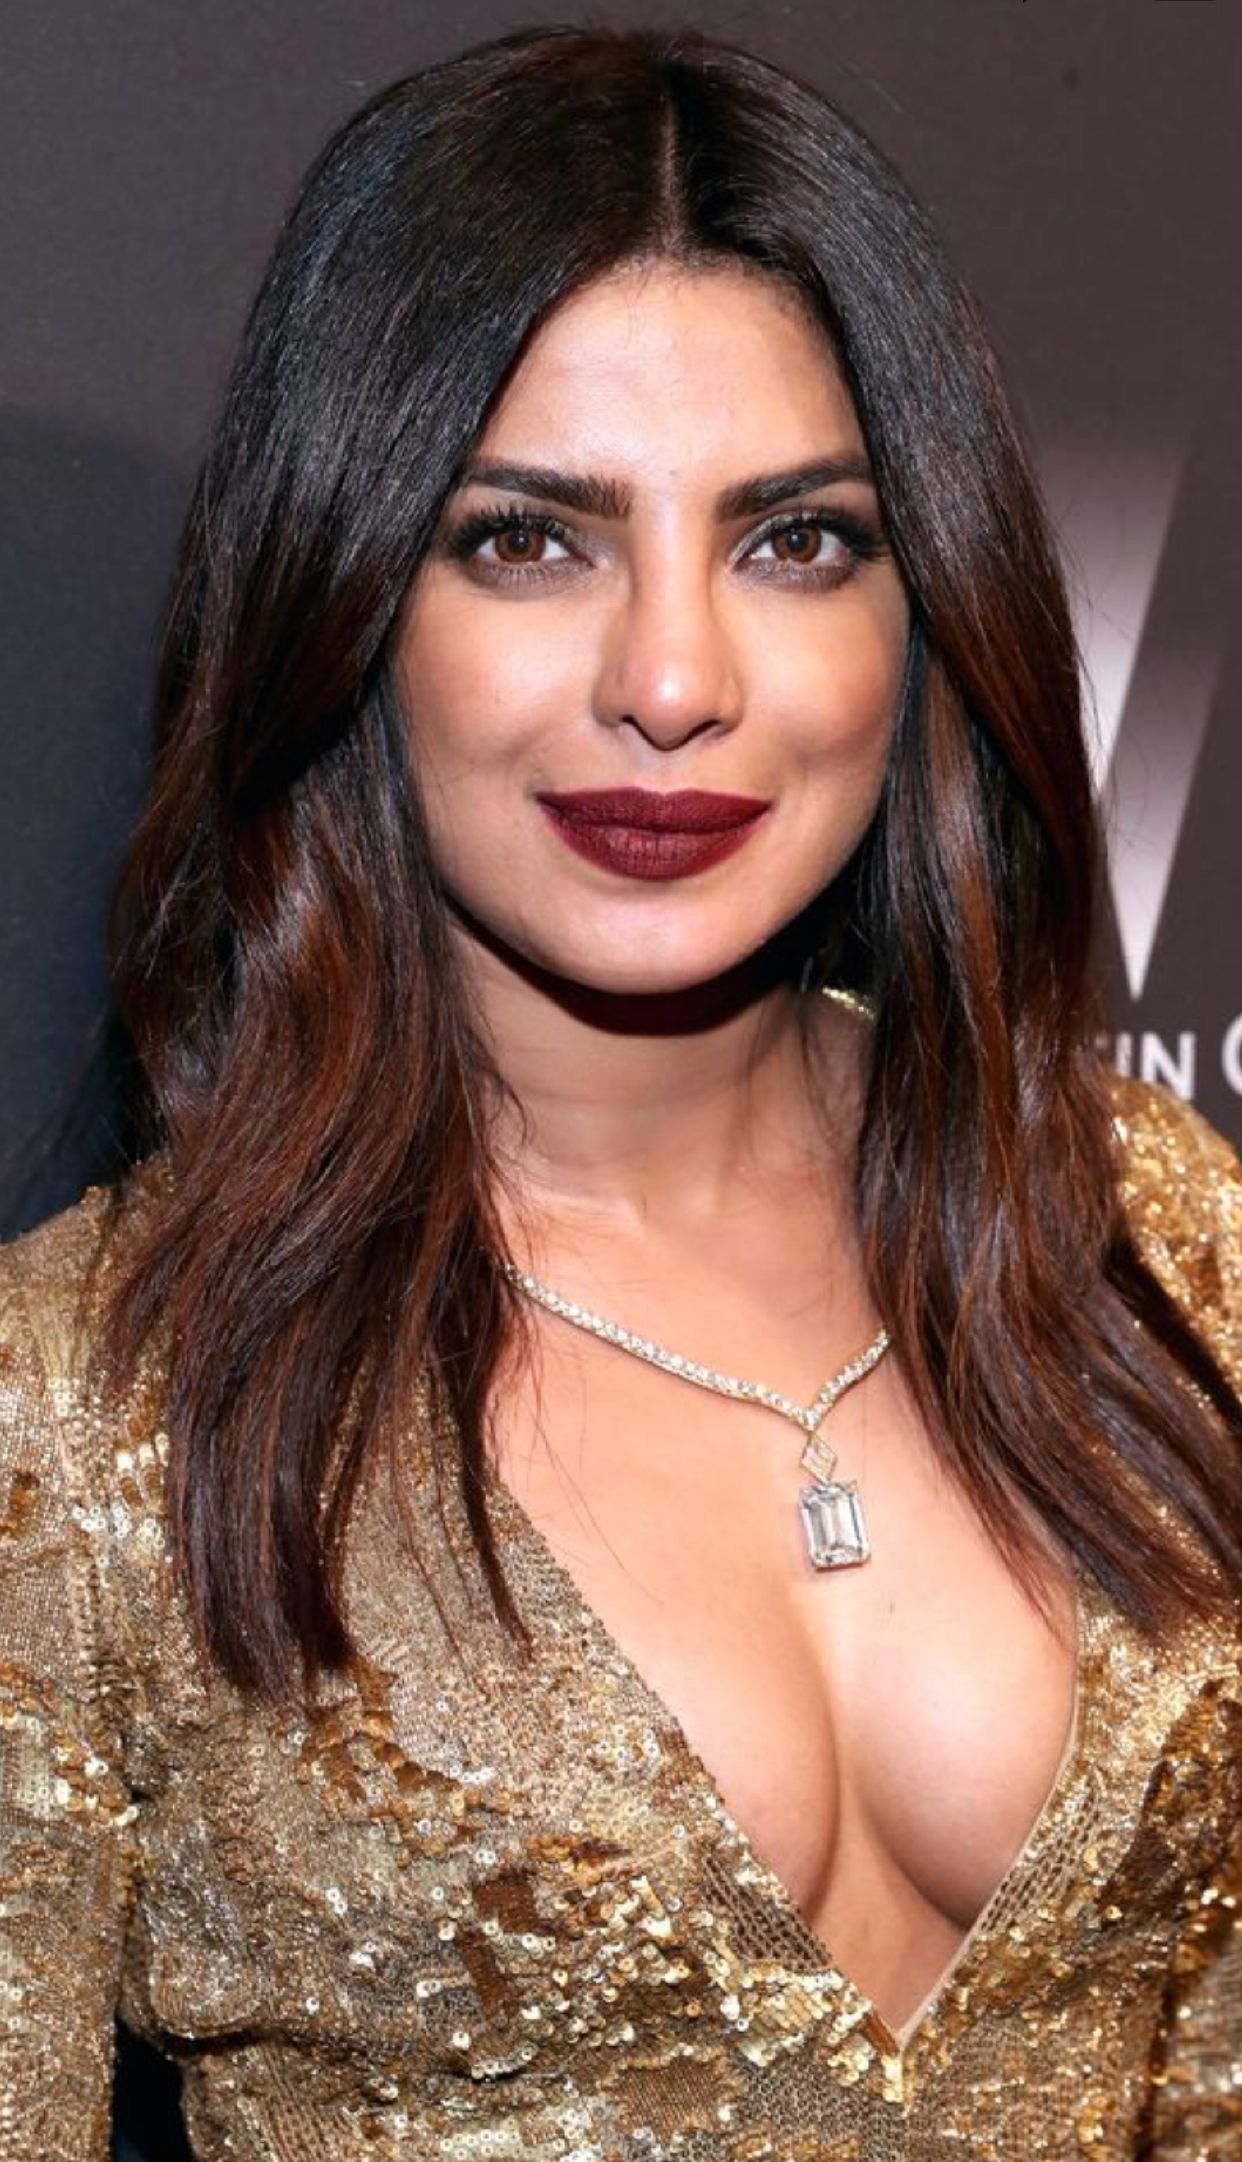 What are some wet bold pictures of Priyanka Chopra? - Quora